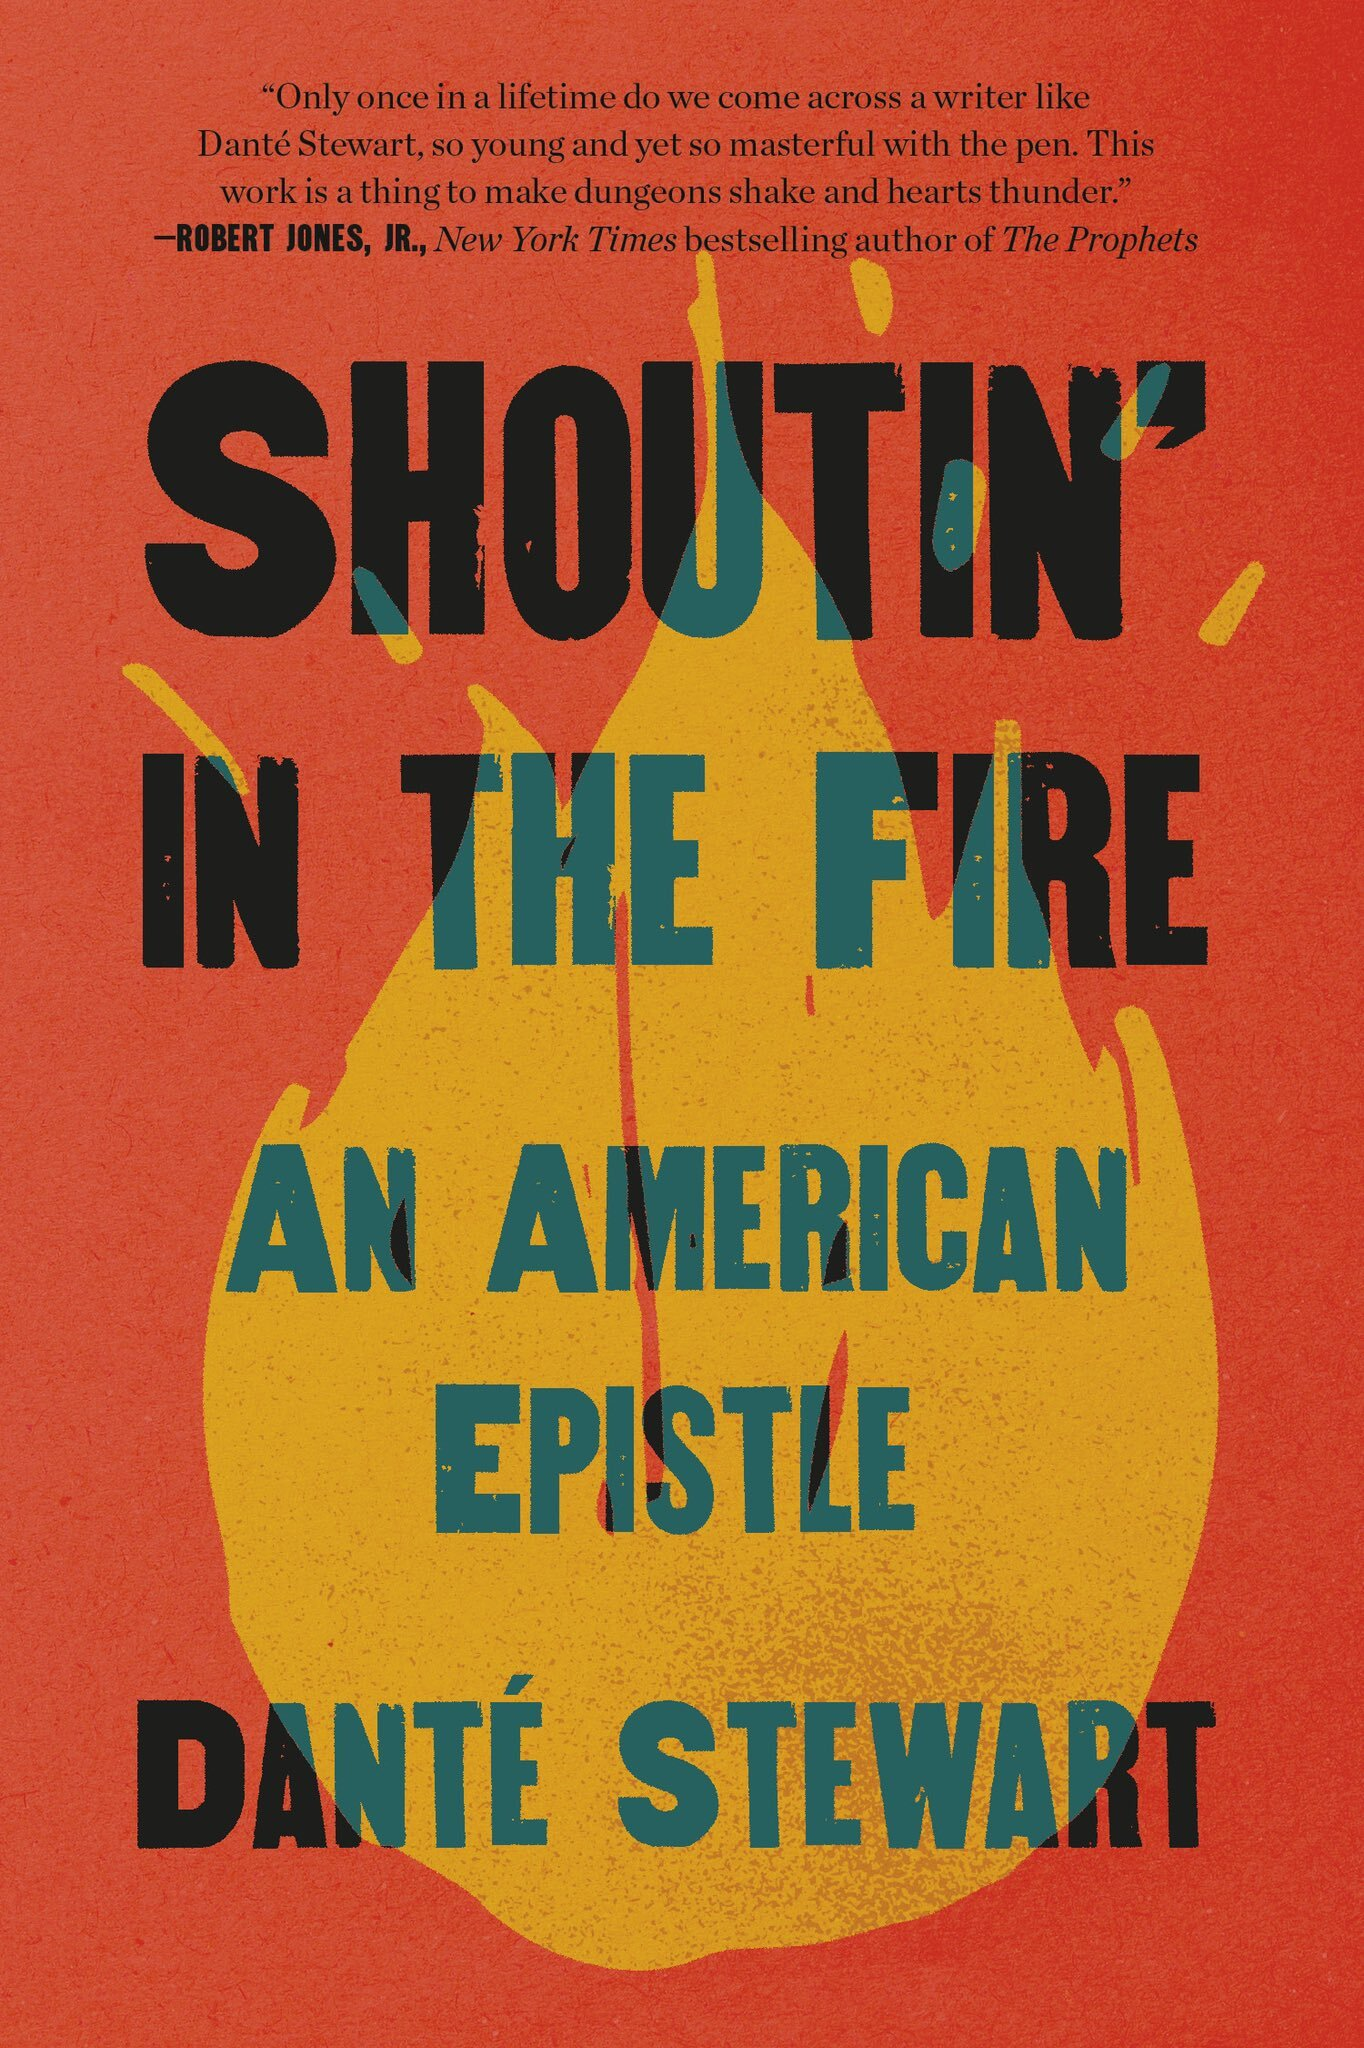 """Book Cover Image of """"Shoutin' In The Fire"""""""